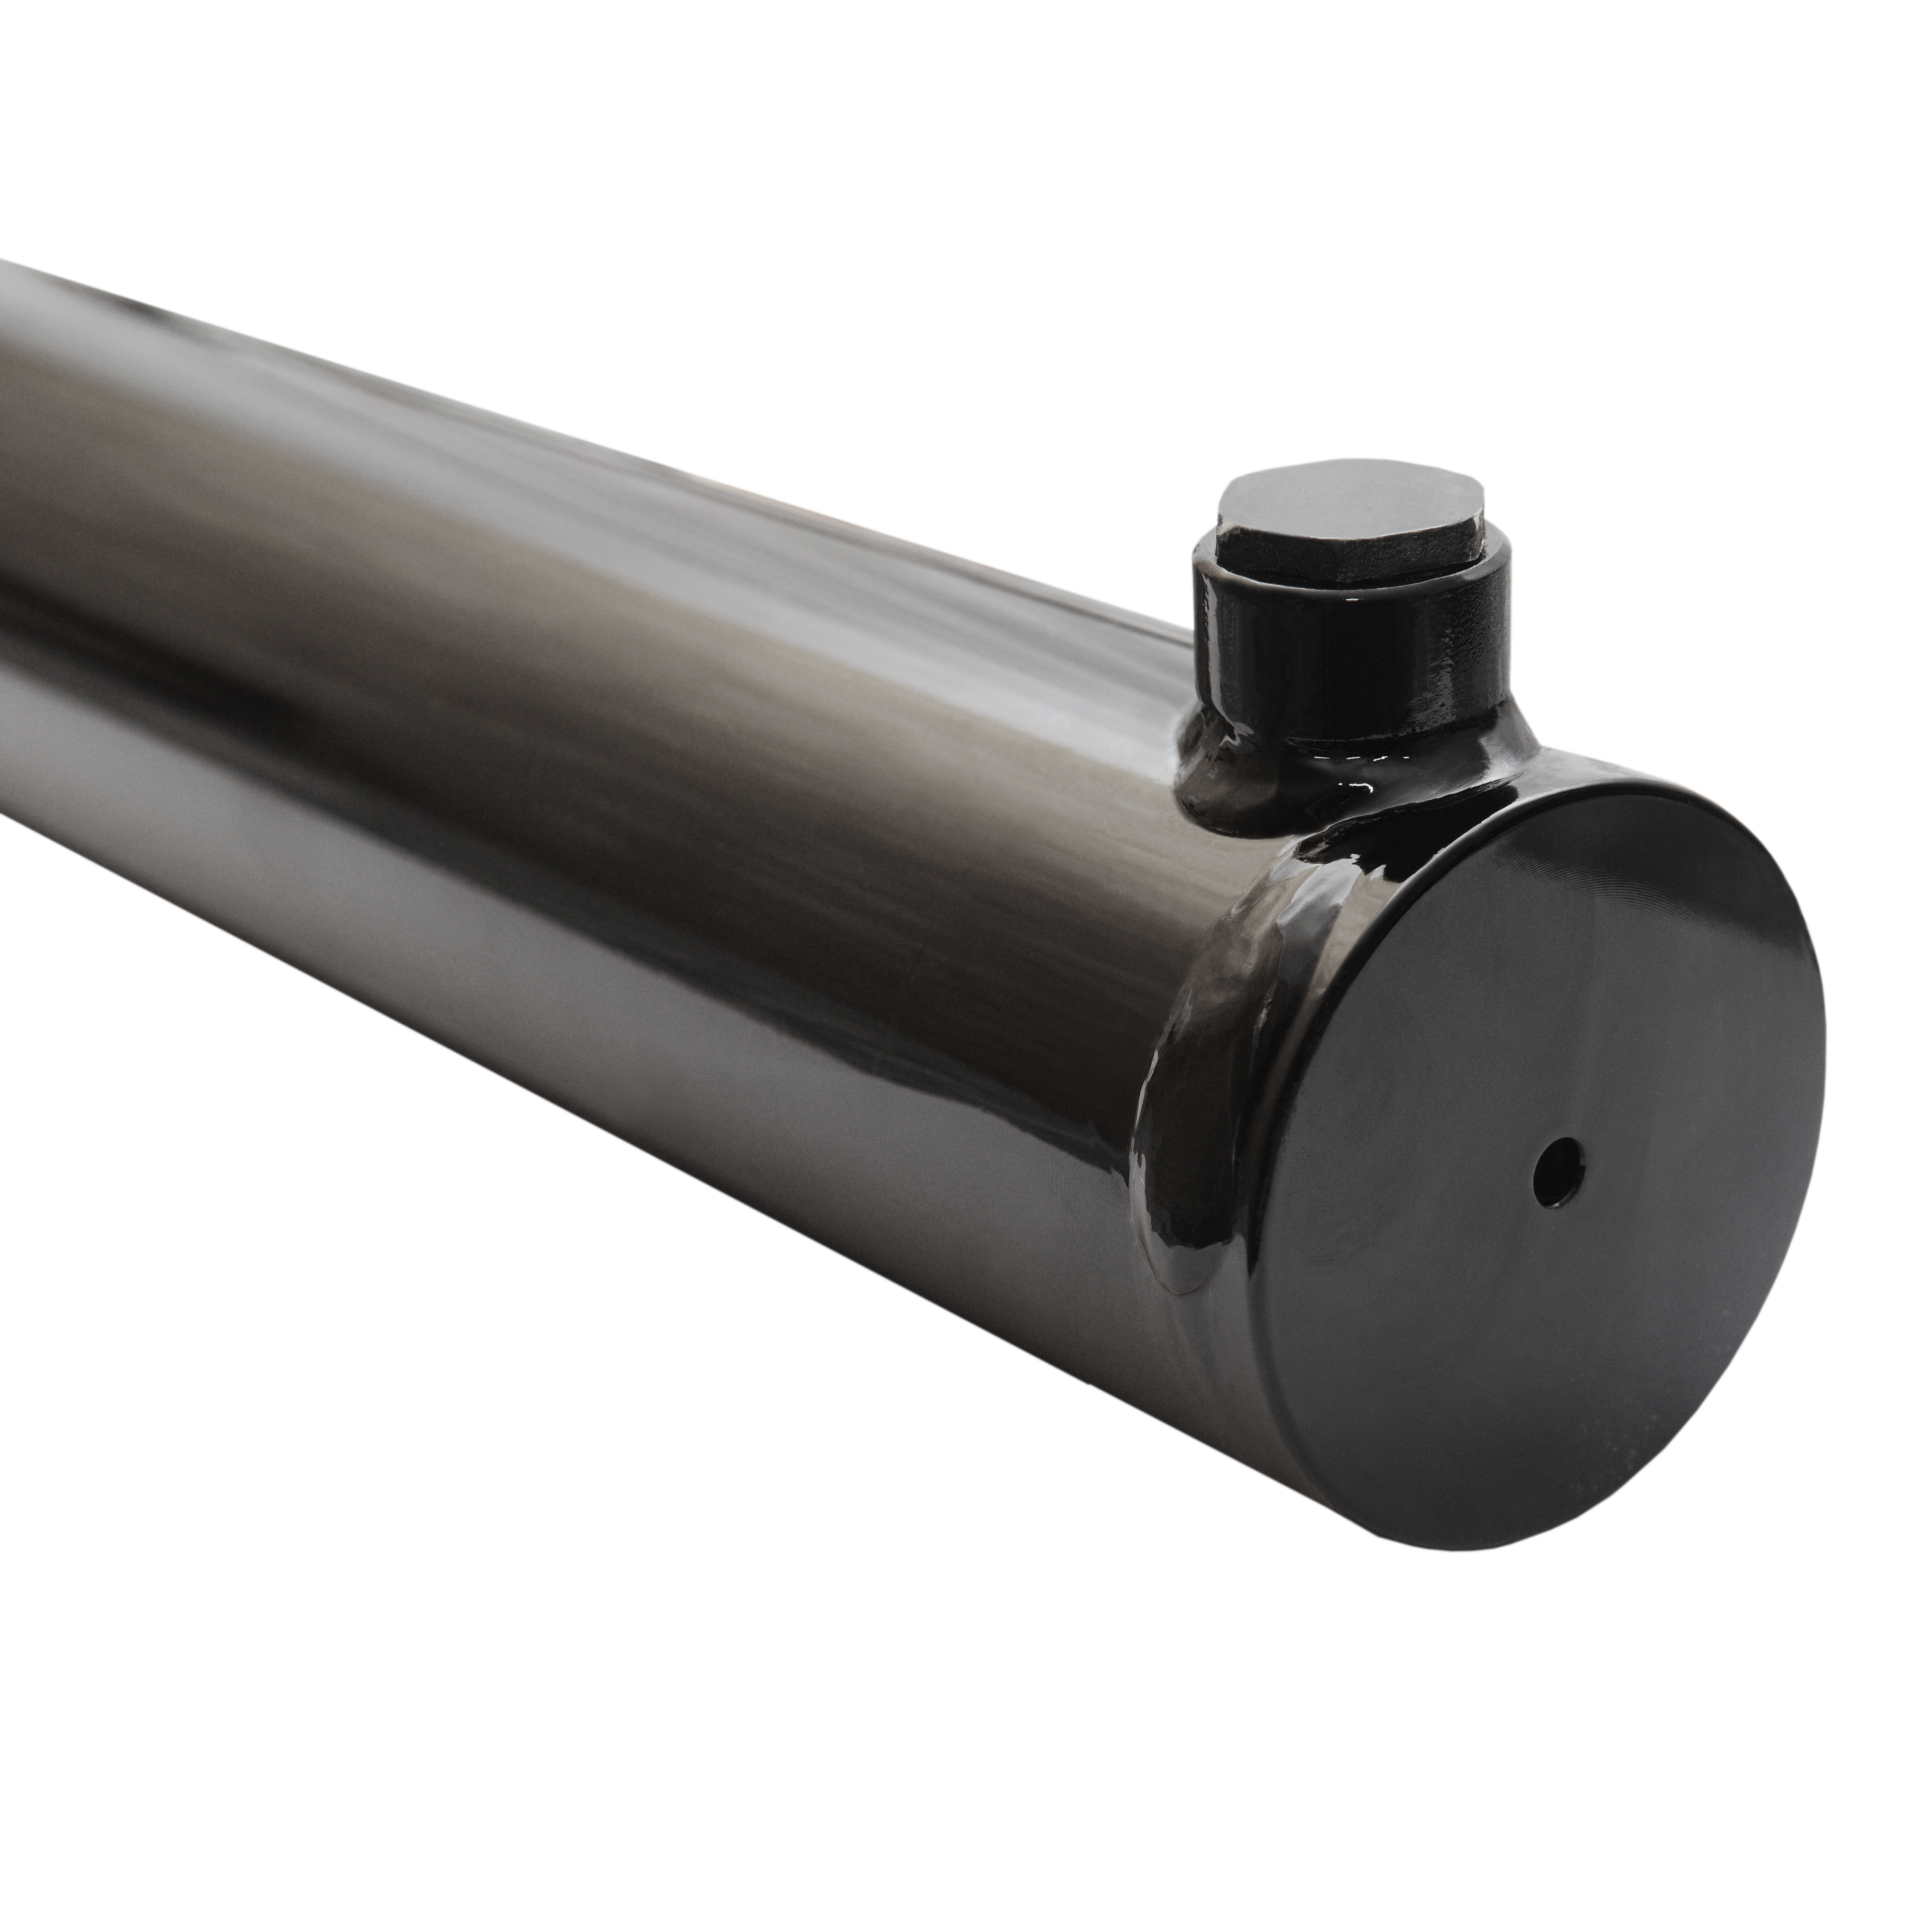 2.5 bore x 12 stroke hydraulic cylinder, welded universal double acting cylinder | Magister Hydraulics